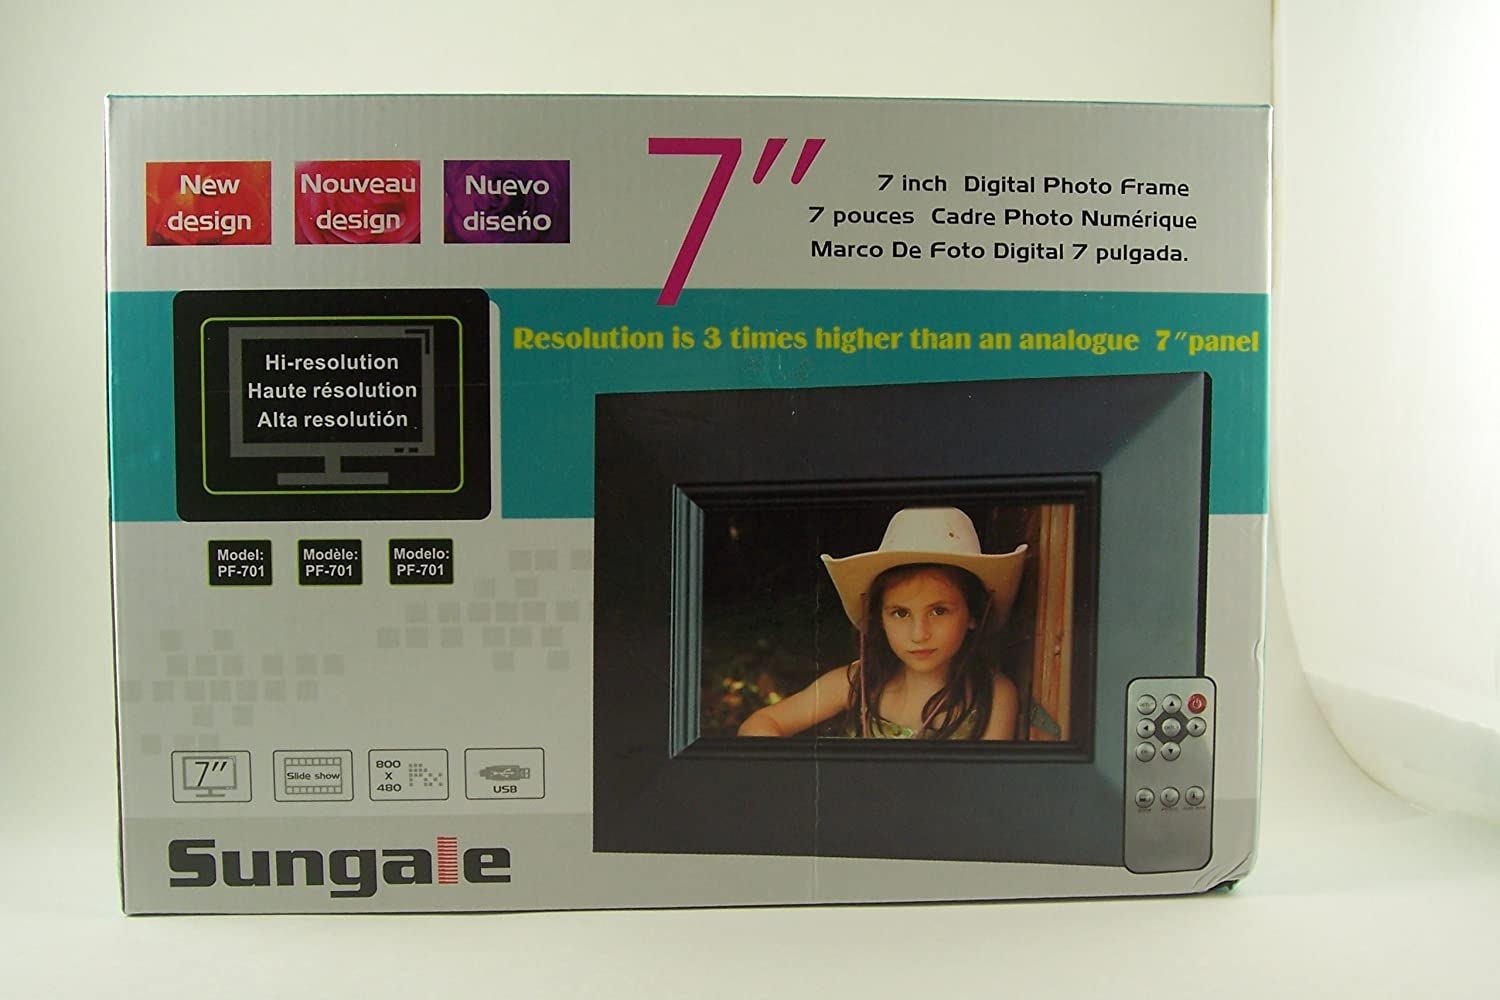 Amazon.com : Sungale PF-701 7-Inch Digital Photo Frame : Electronics